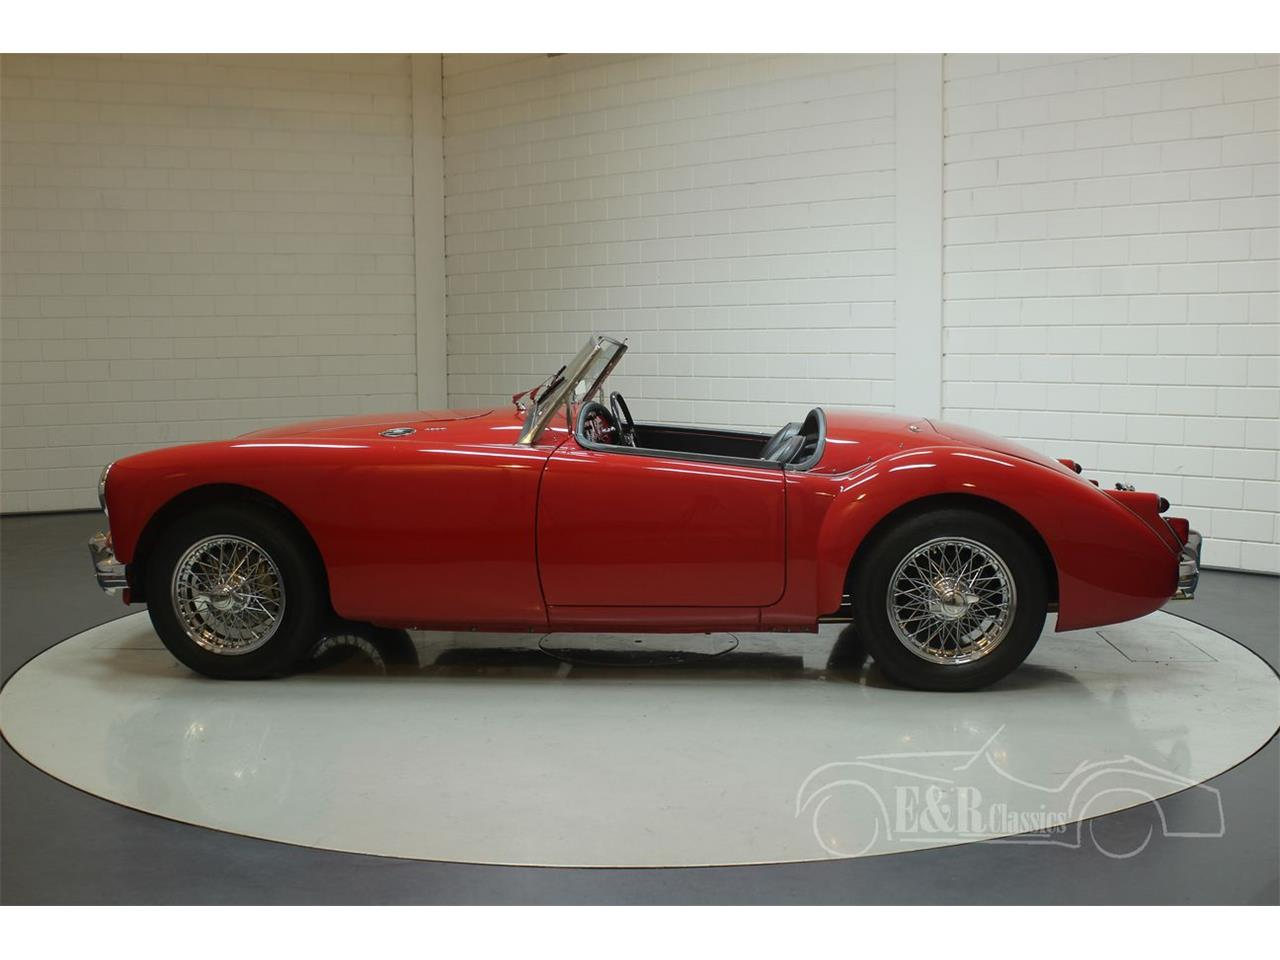 Large Picture of Classic '59 MG MGA located in - Keine Angabe - - $56,500.00 Offered by E & R Classics - PGST